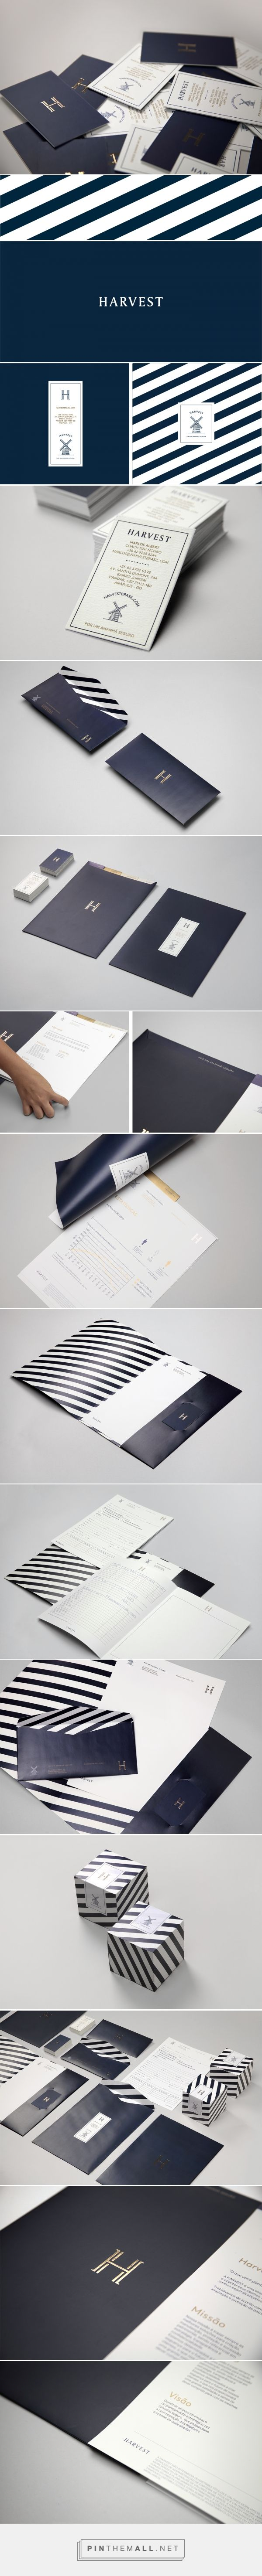 Harvest Branding on Behance | Fivestar Branding – Design and Branding Agency & Inspiration Gallery